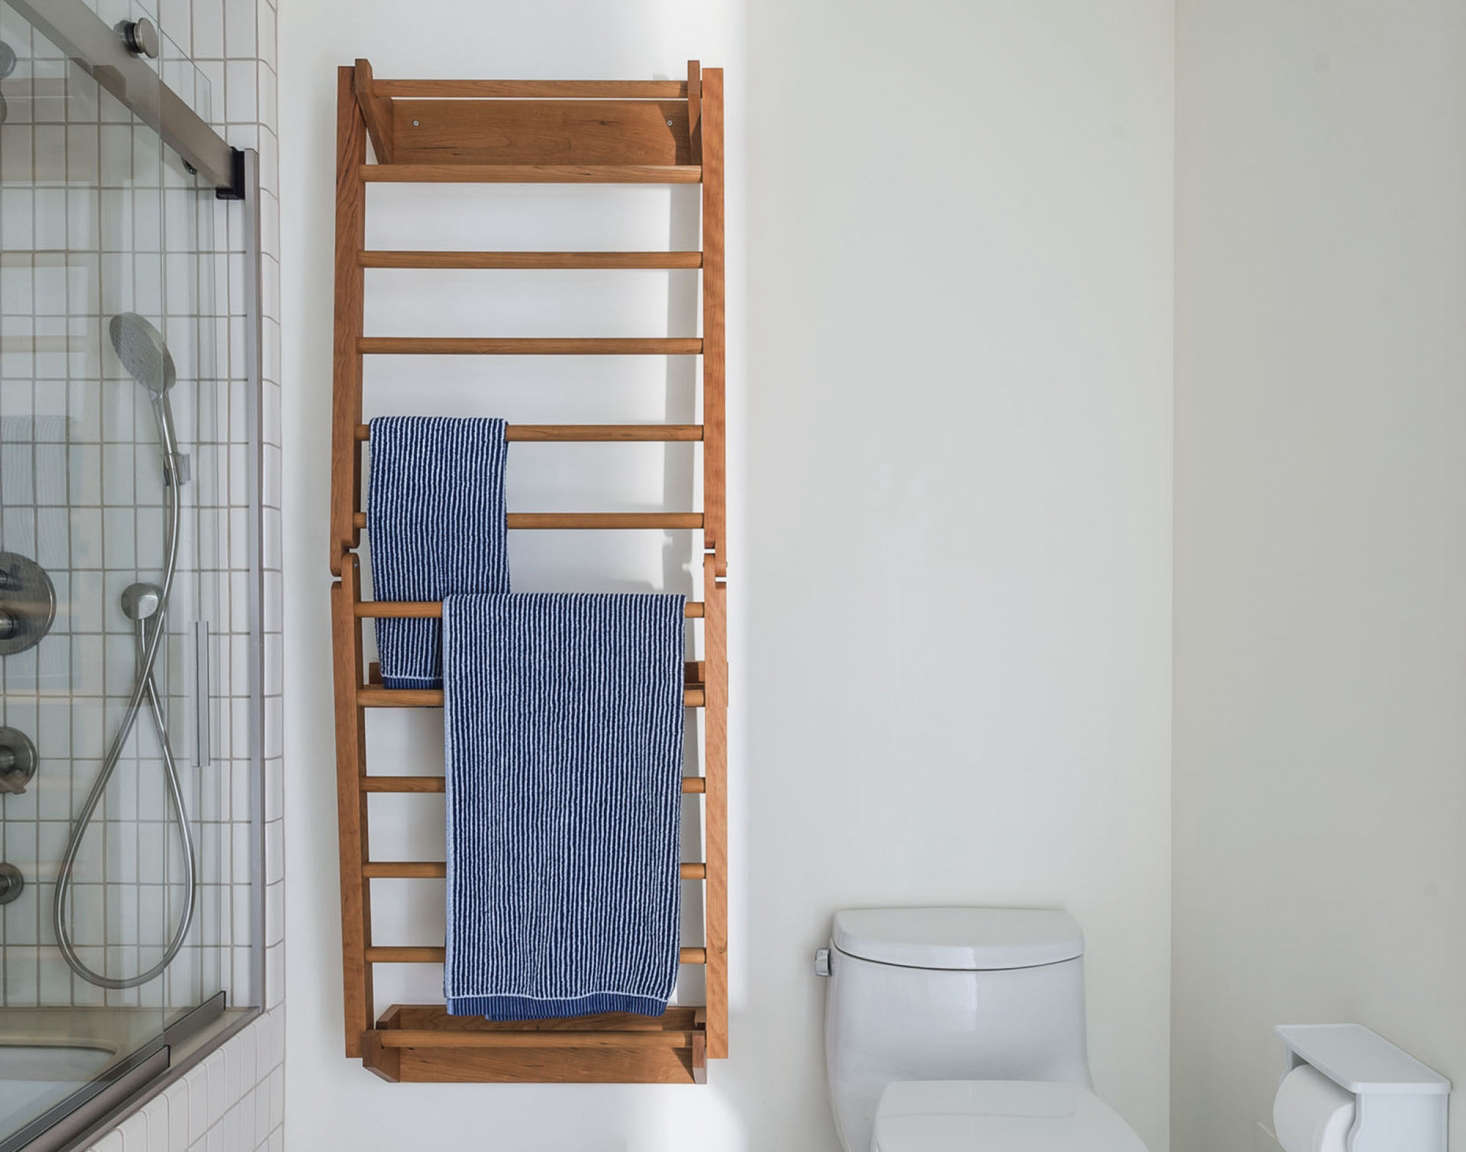 Cute A custom towel and drying rack hangs on a wall Requested as a solution for